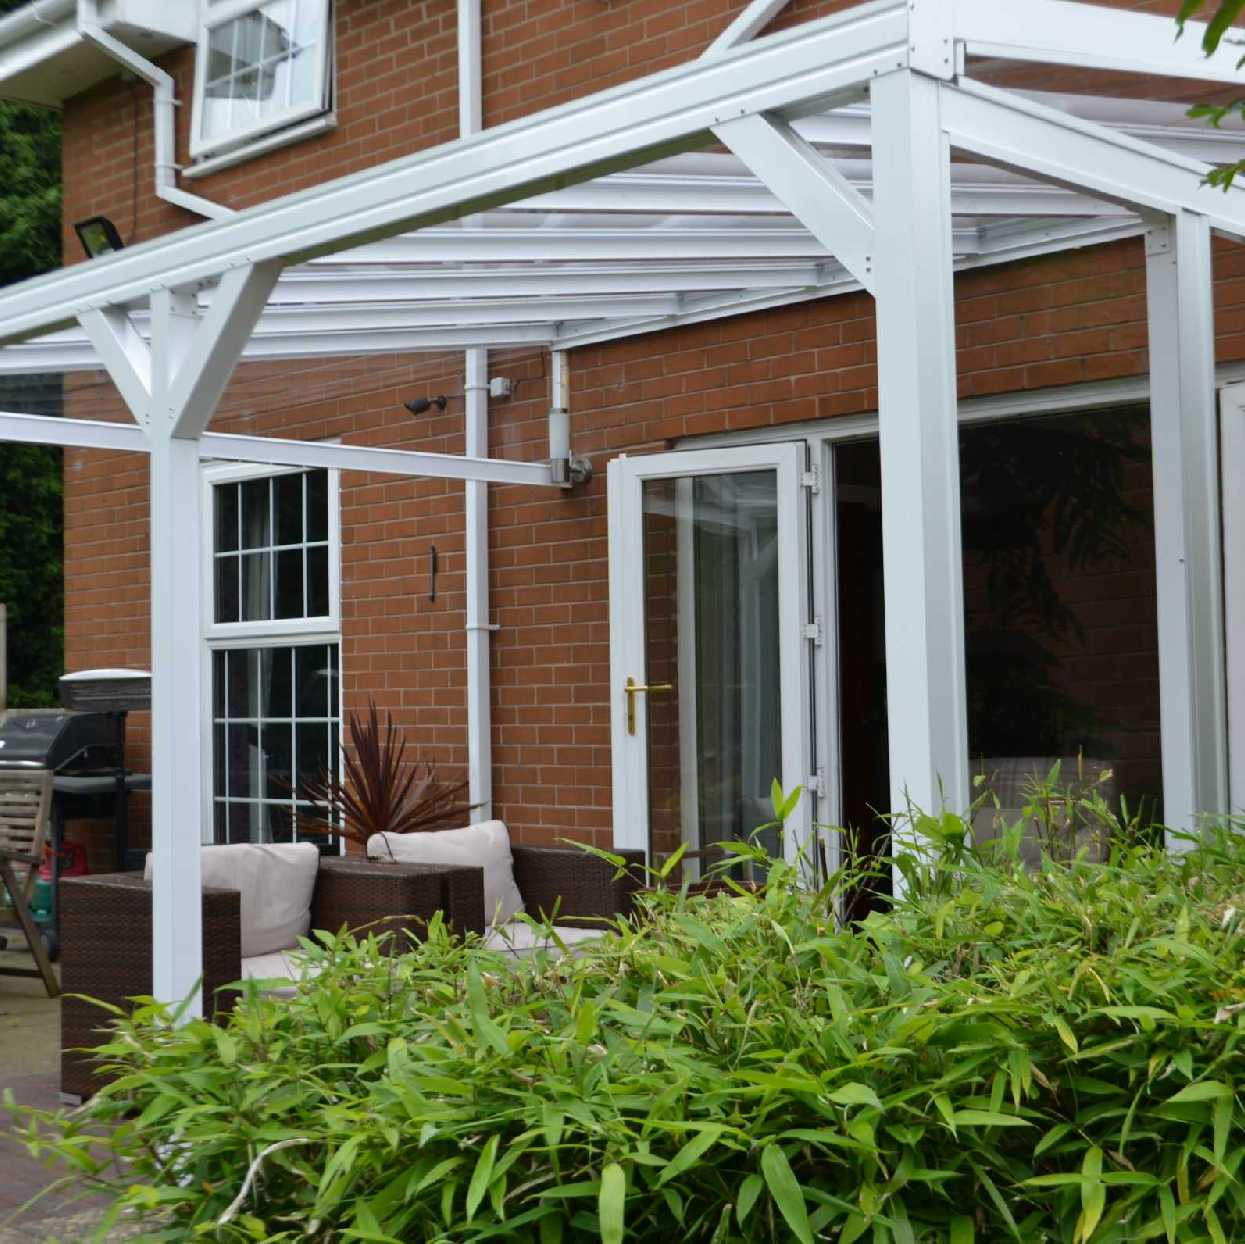 Omega Smart Lean-To Canopy UNGLAZED for 6mm Glazing - 8.4m (W) x 2.5m (P), (4) Supporting Posts from Omega Build